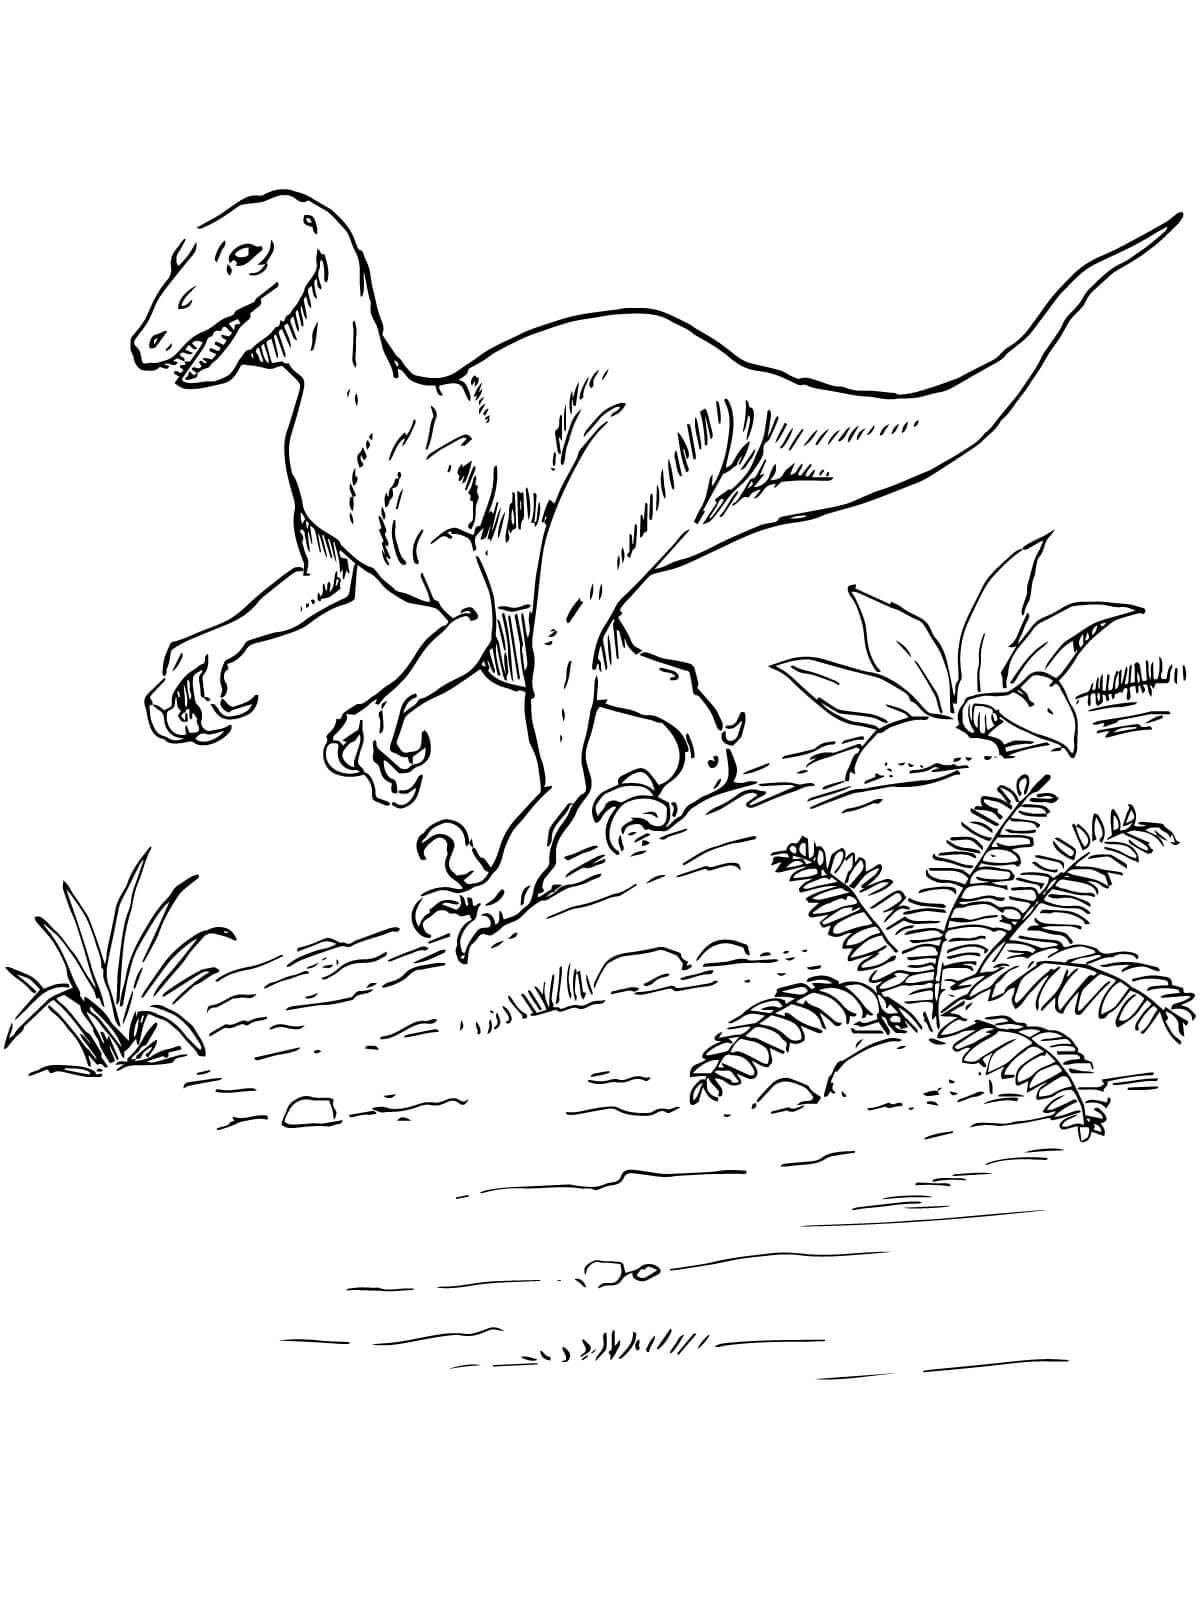 Top 35 Free Printable Unique Dinosaur Coloring Pages